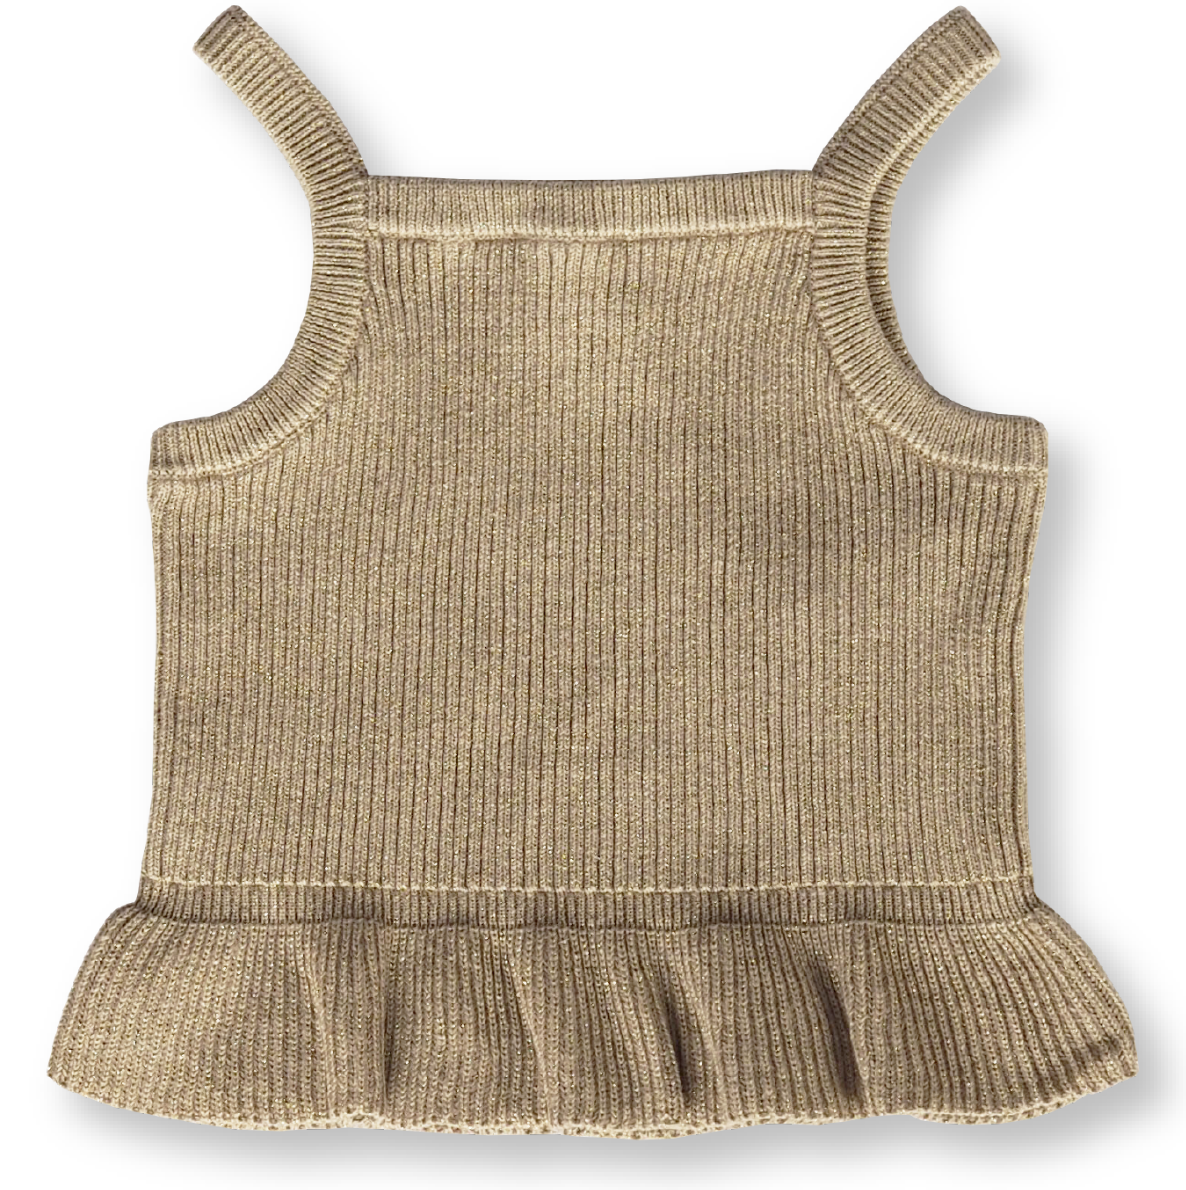 GROWN RIBBED FRILL TOP: GOLDIE